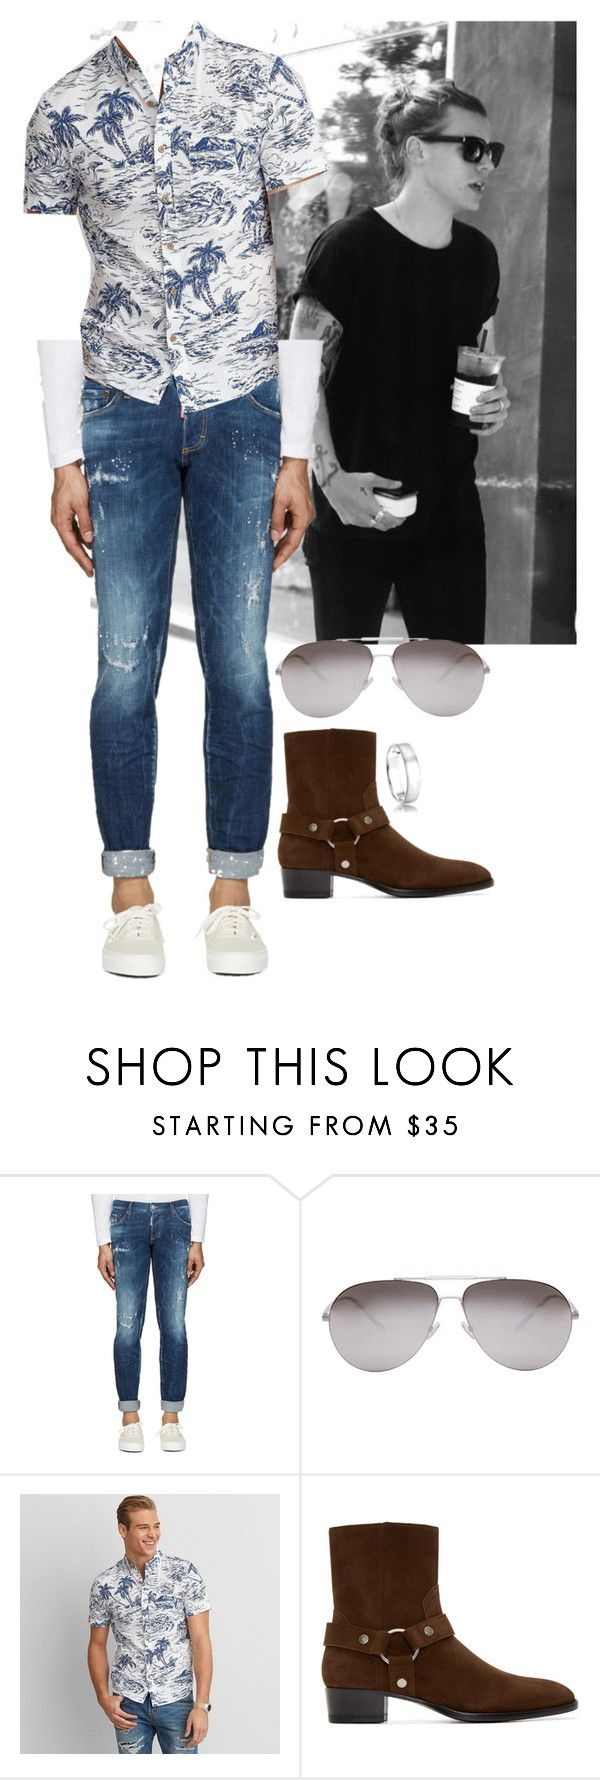 """Caedyn Caulton"" by ashleyr0sexo ❤ liked on Polyvore featuring Dsquared2, Dior Homme, American Eagle Outfitters, Yves Saint Laurent, Astley Clarke, men's fashion and menswear"